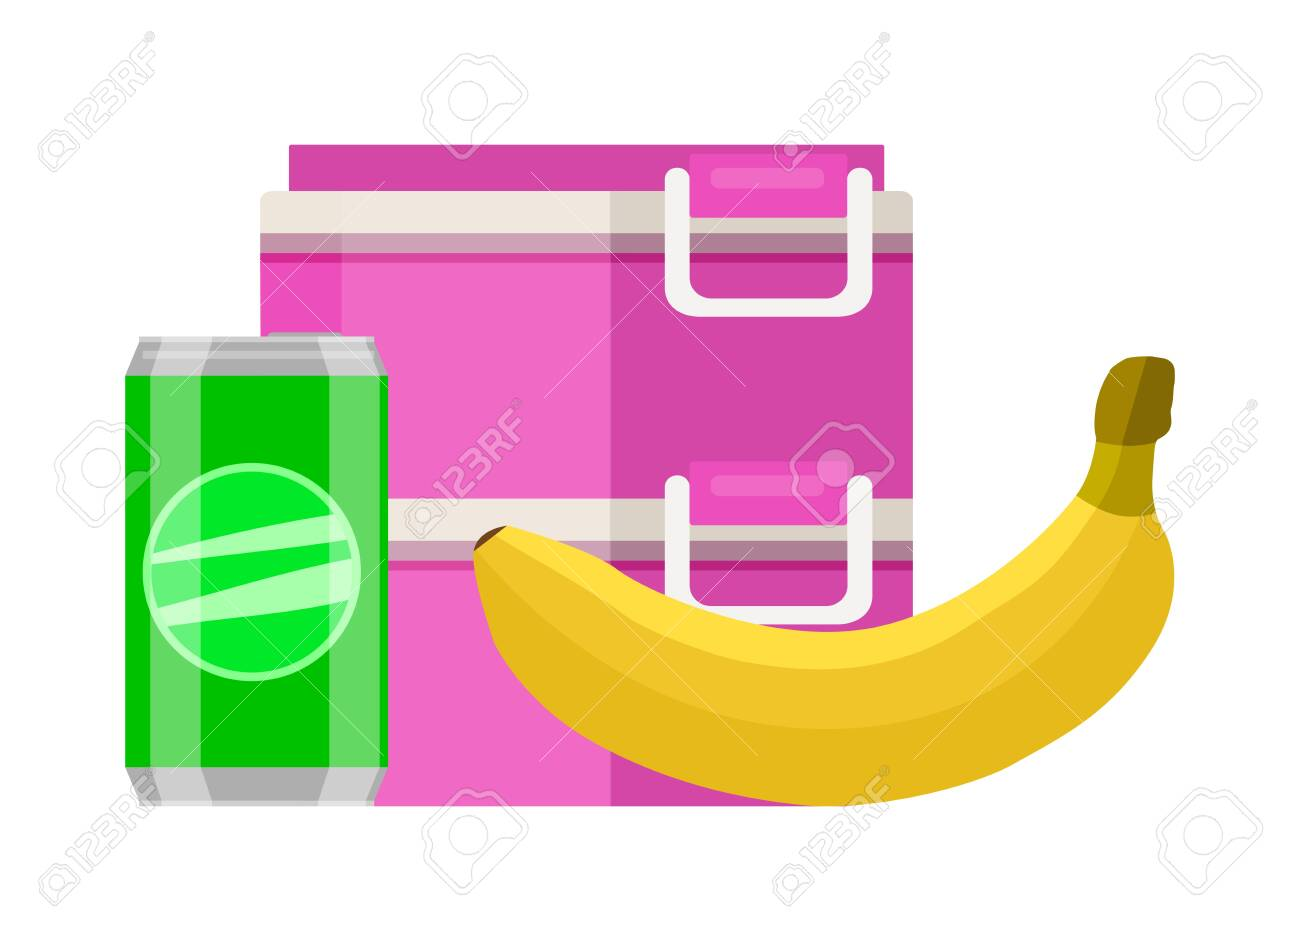 Lunchbox school snack. Pink two tier food container lunchbox yellow ripe banana green soda can healthy fresh breakfast every day. Tasty vector clipart. - 147219263